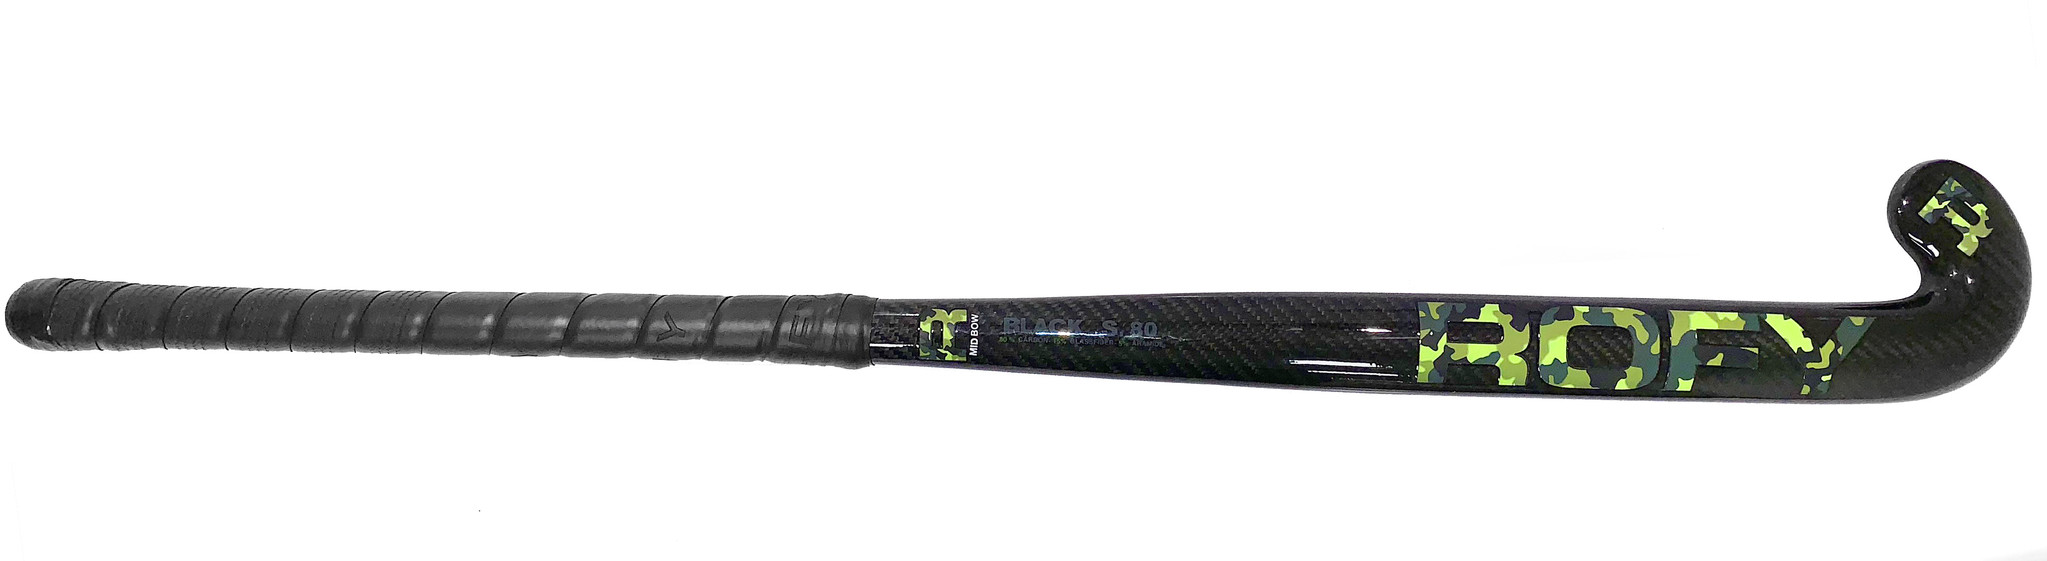 ROFY Black S. 80% Carbon Mid Bow